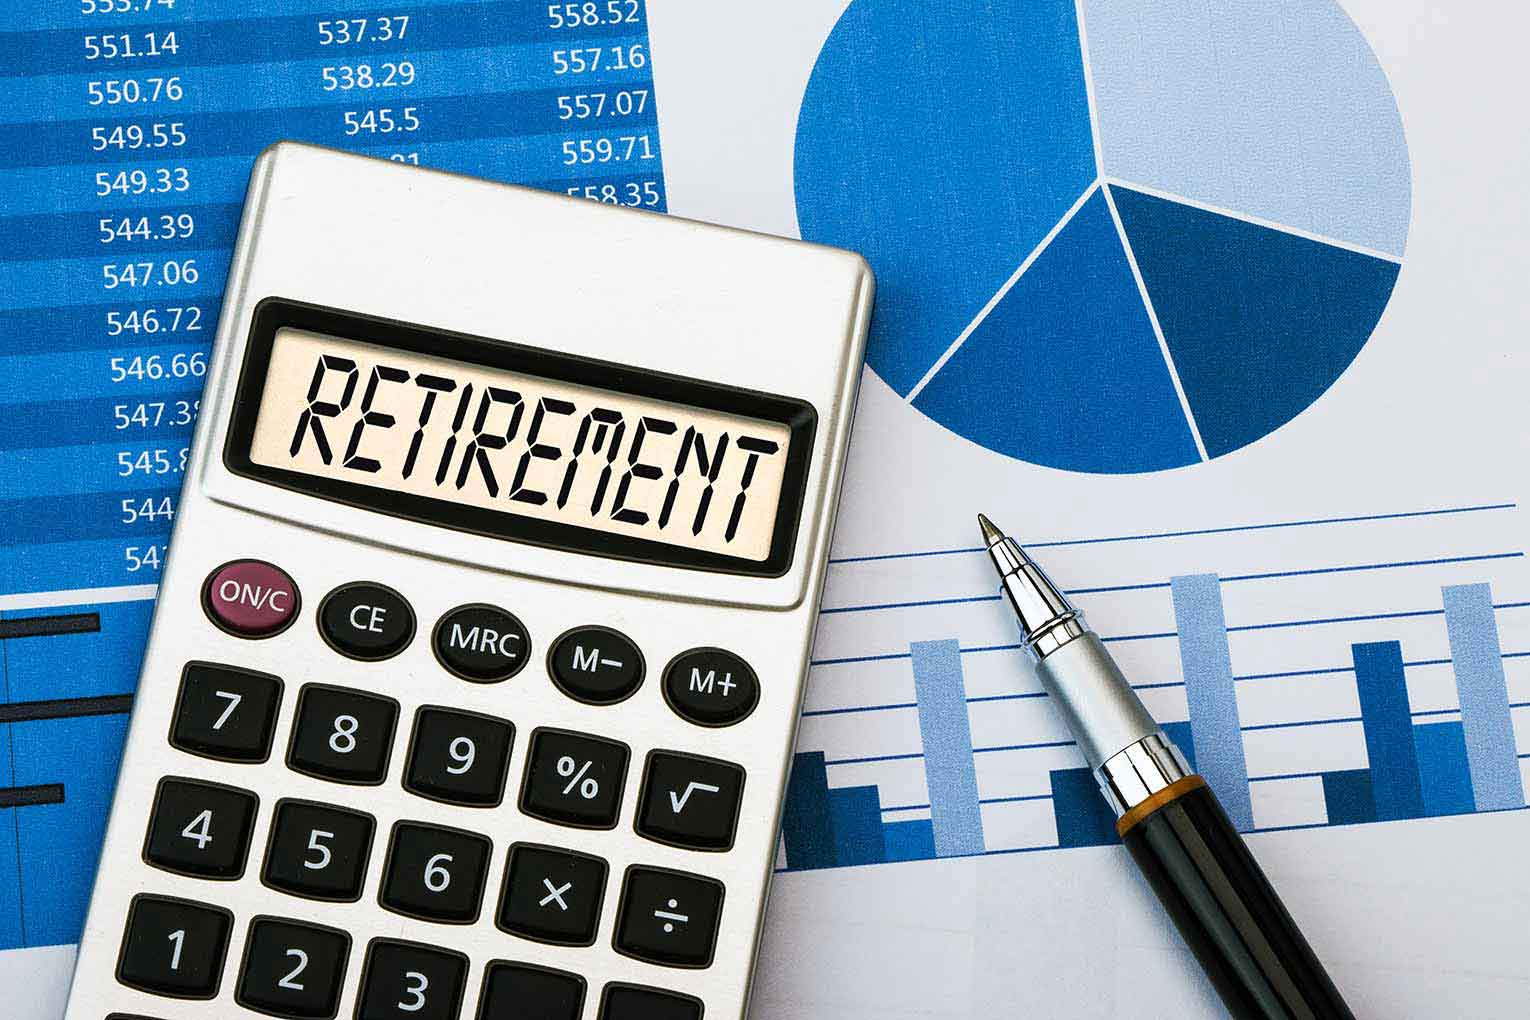 Record £19900 retirement income average